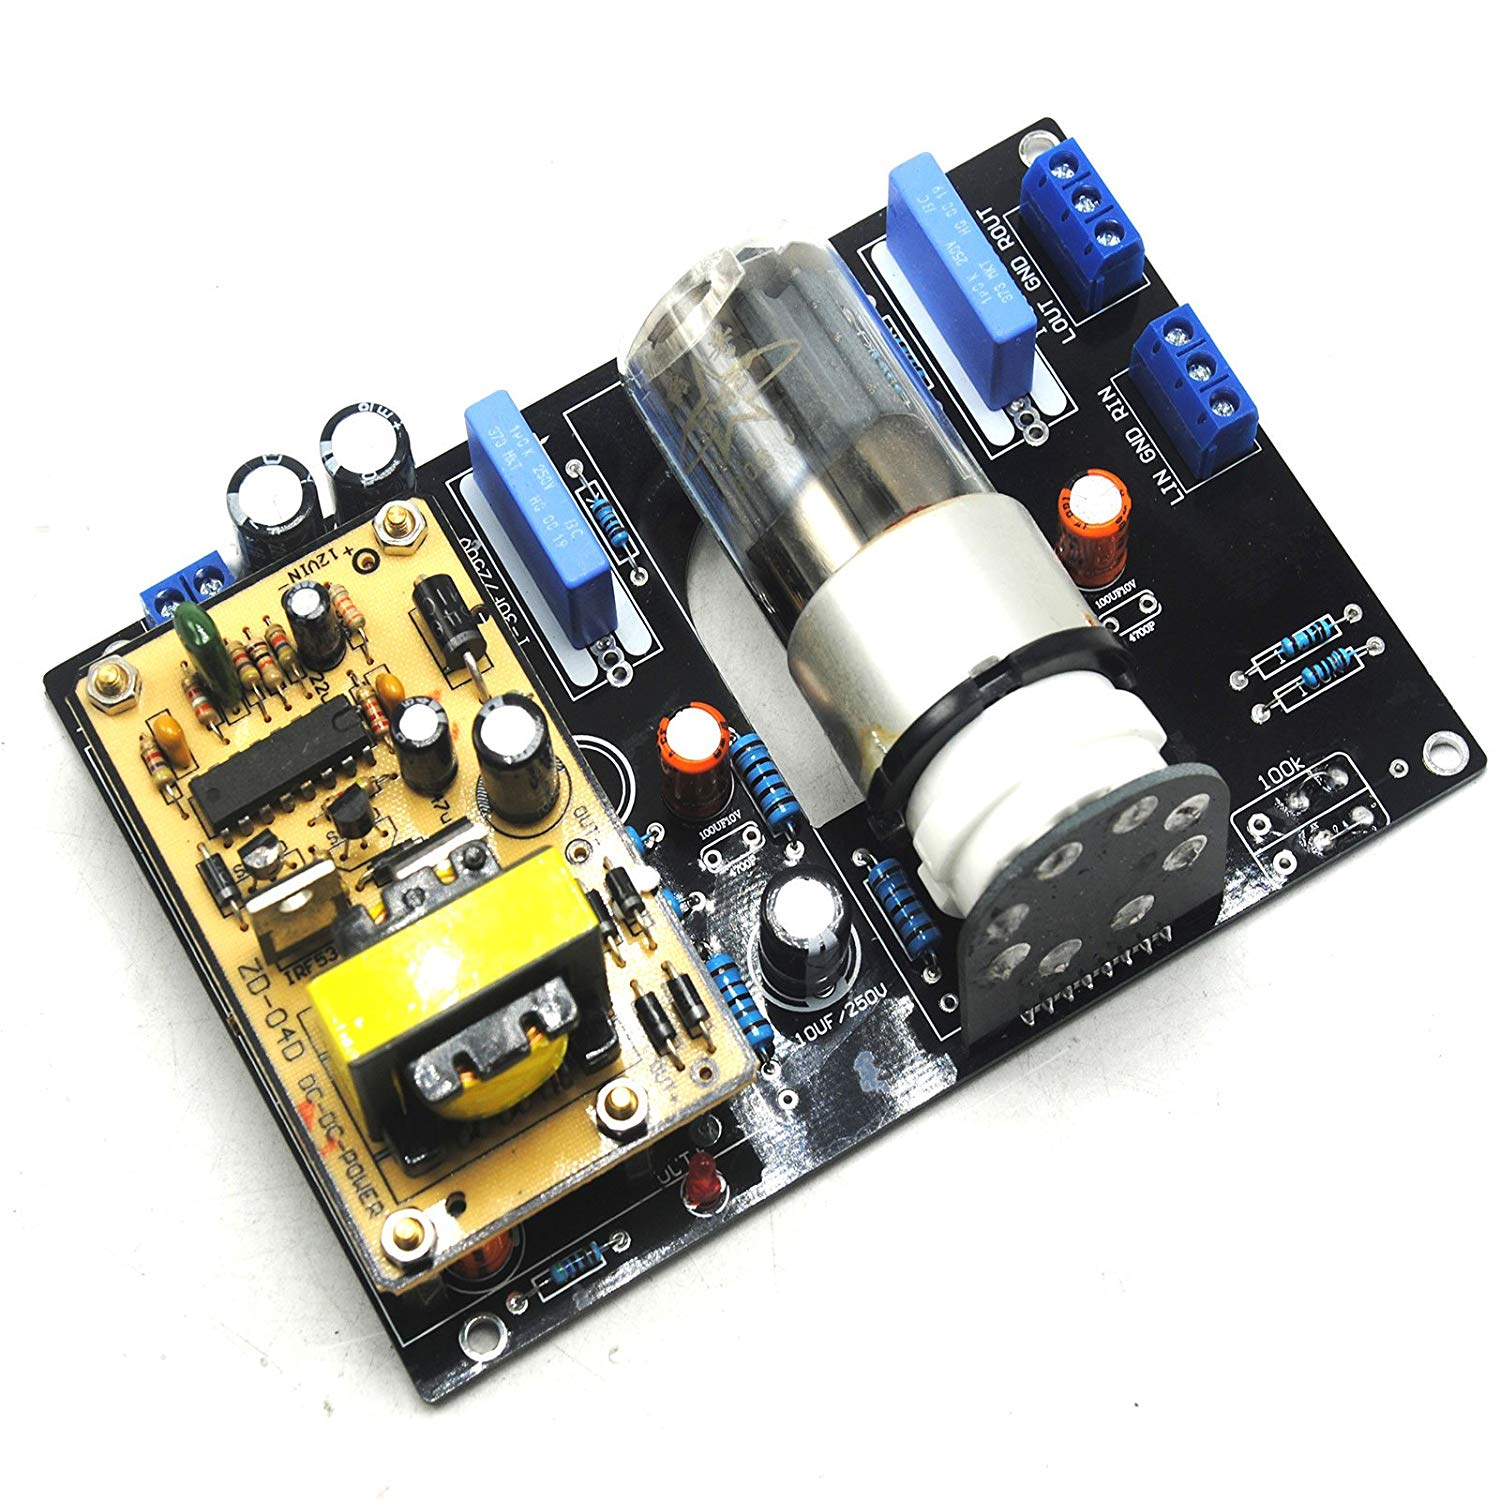 Cheap Car Audio Preamplifier Find Deals On Preamp Module Volume Control Amplifier Headphone Board Diy Get Quotations Dc12v 6n8p 6h8c 6sn7 Tube Valve Pre Amp